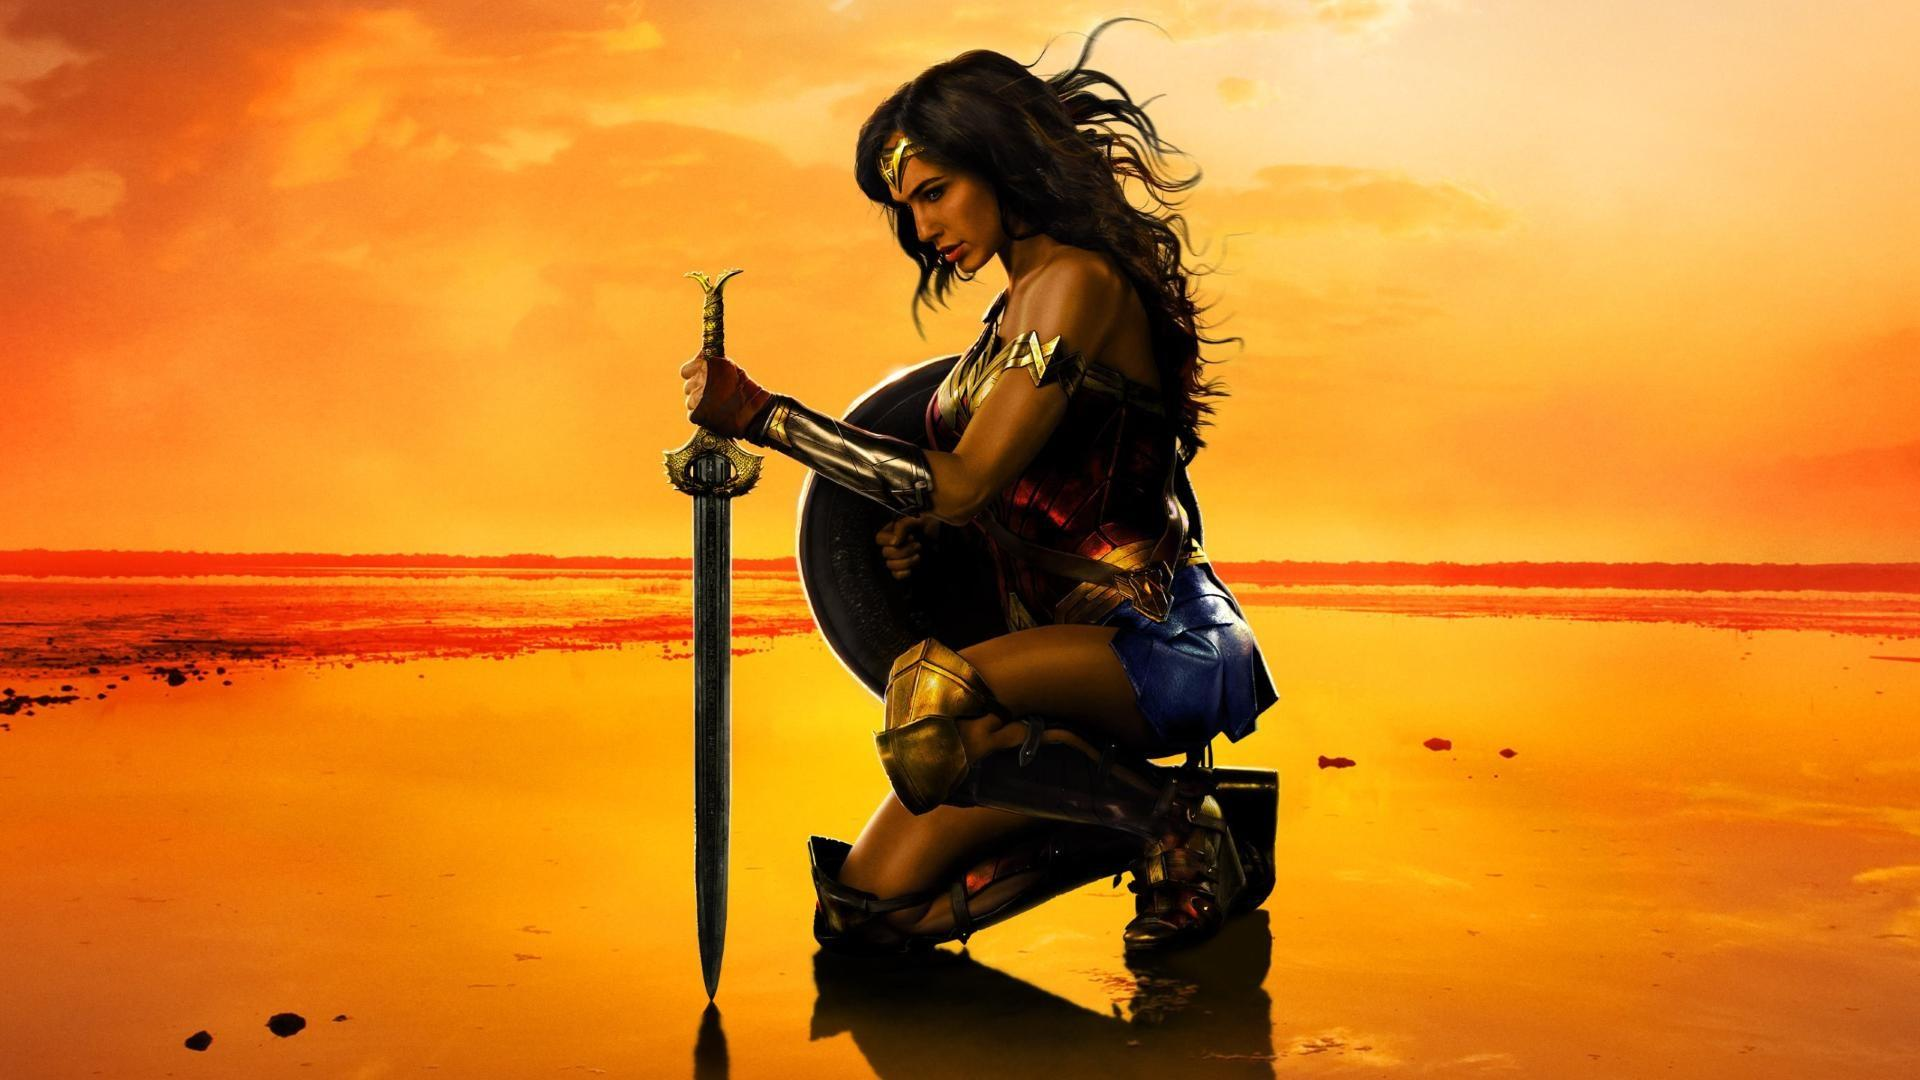 Wonder Woman Launches New WB Franchise And Strengthens Justice League